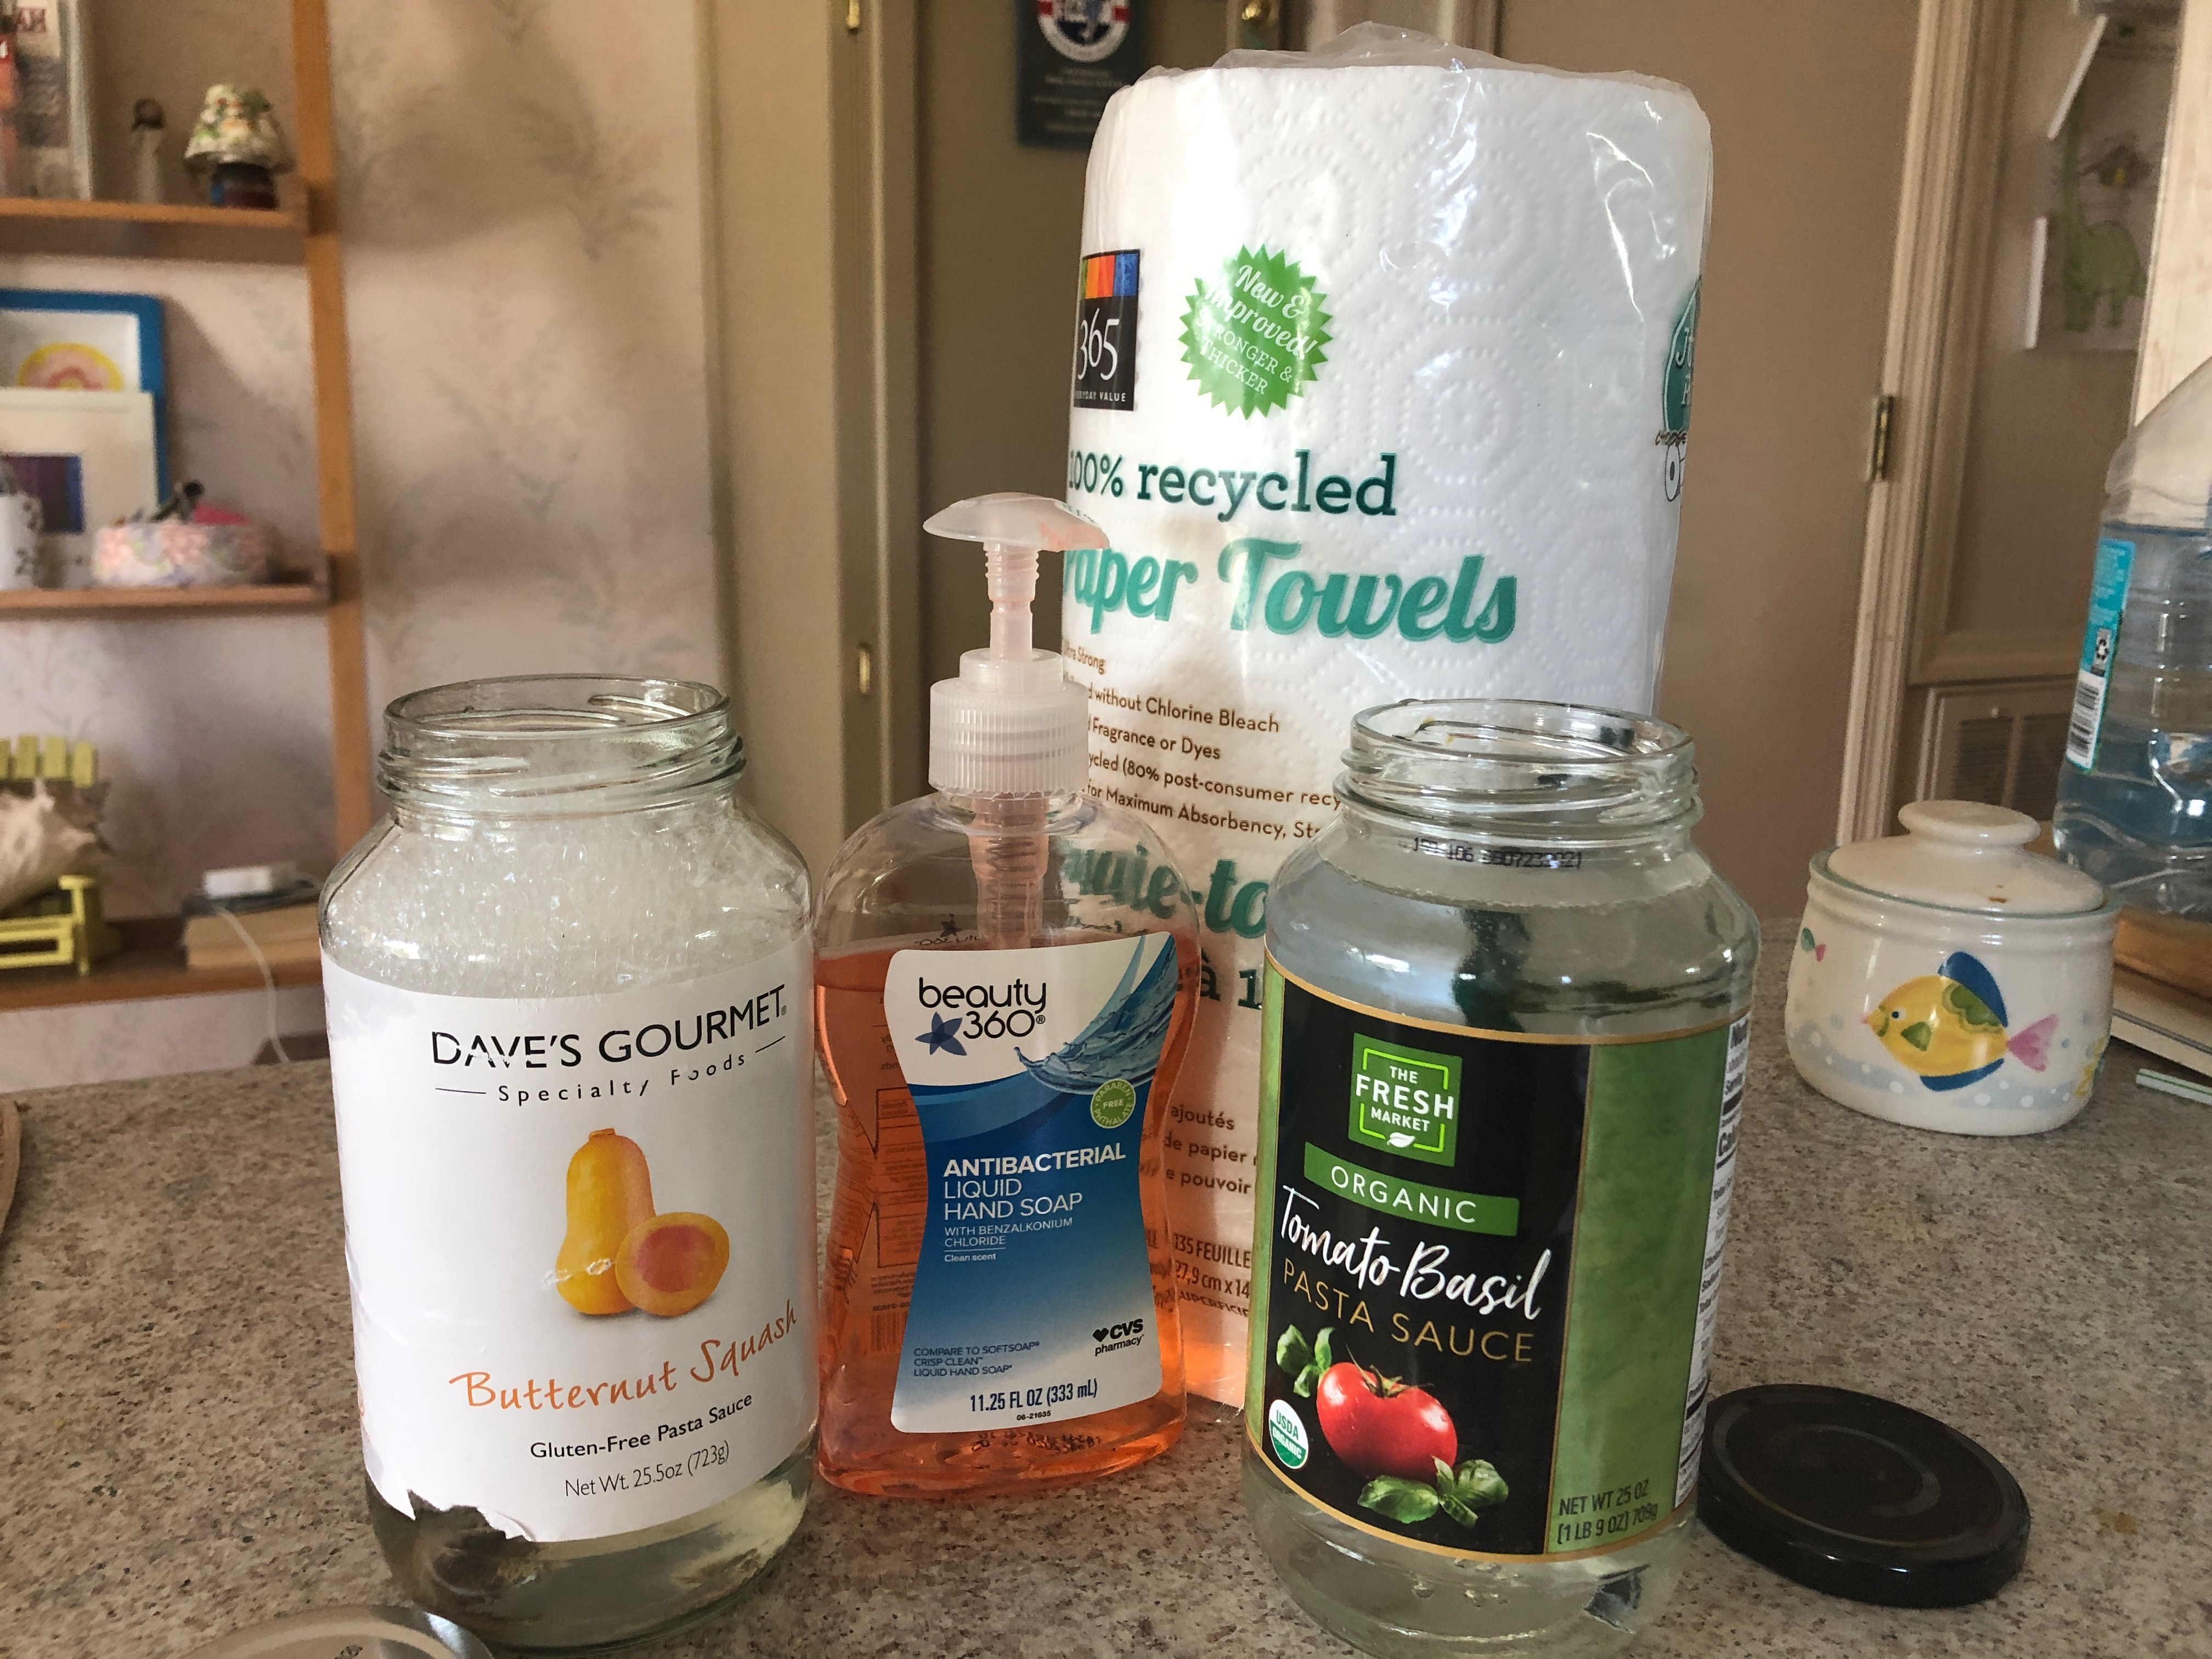 Travel kits for washing hands